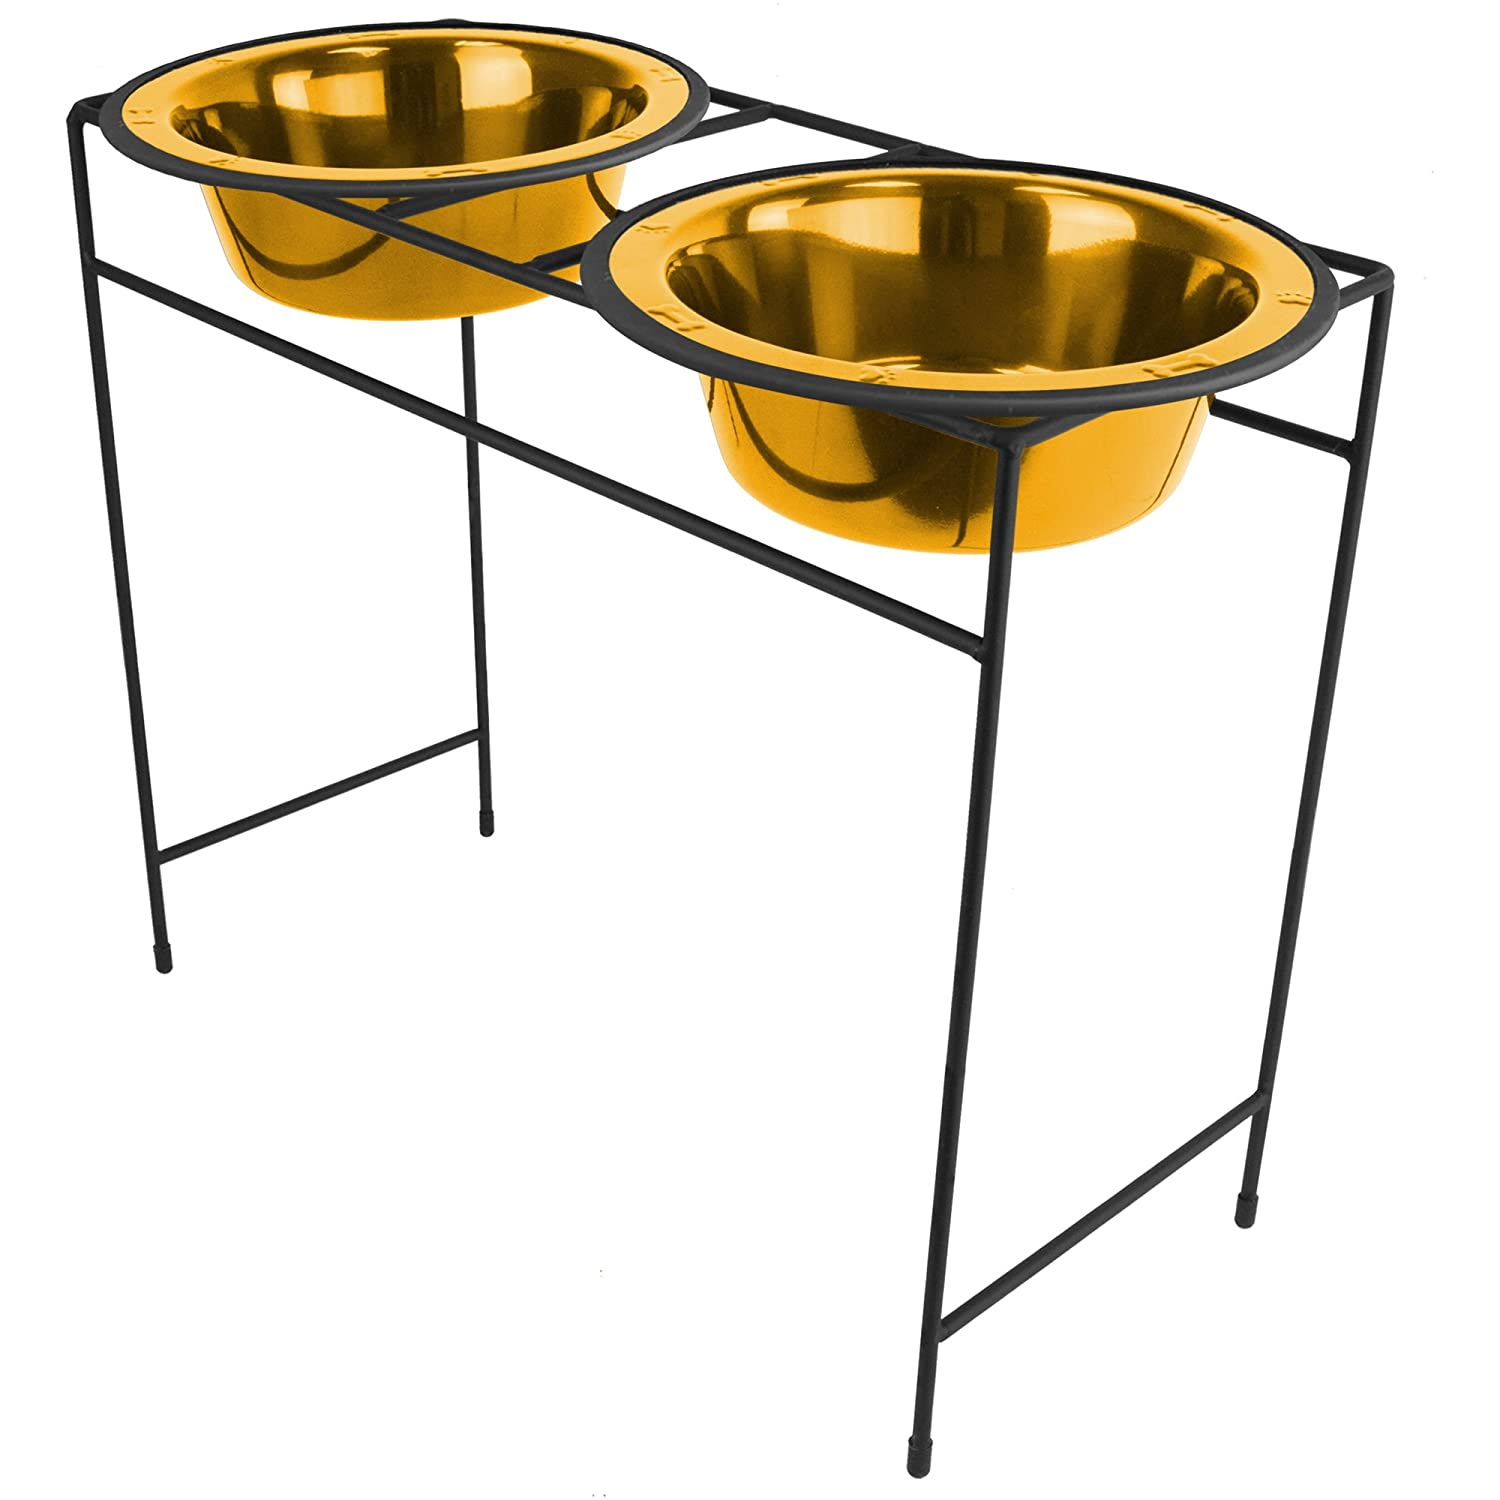 gold Platinum Pets MDDS96GLD Modern Double Diner Stand with 2 96-Ounce Wide Rimmed Bowls